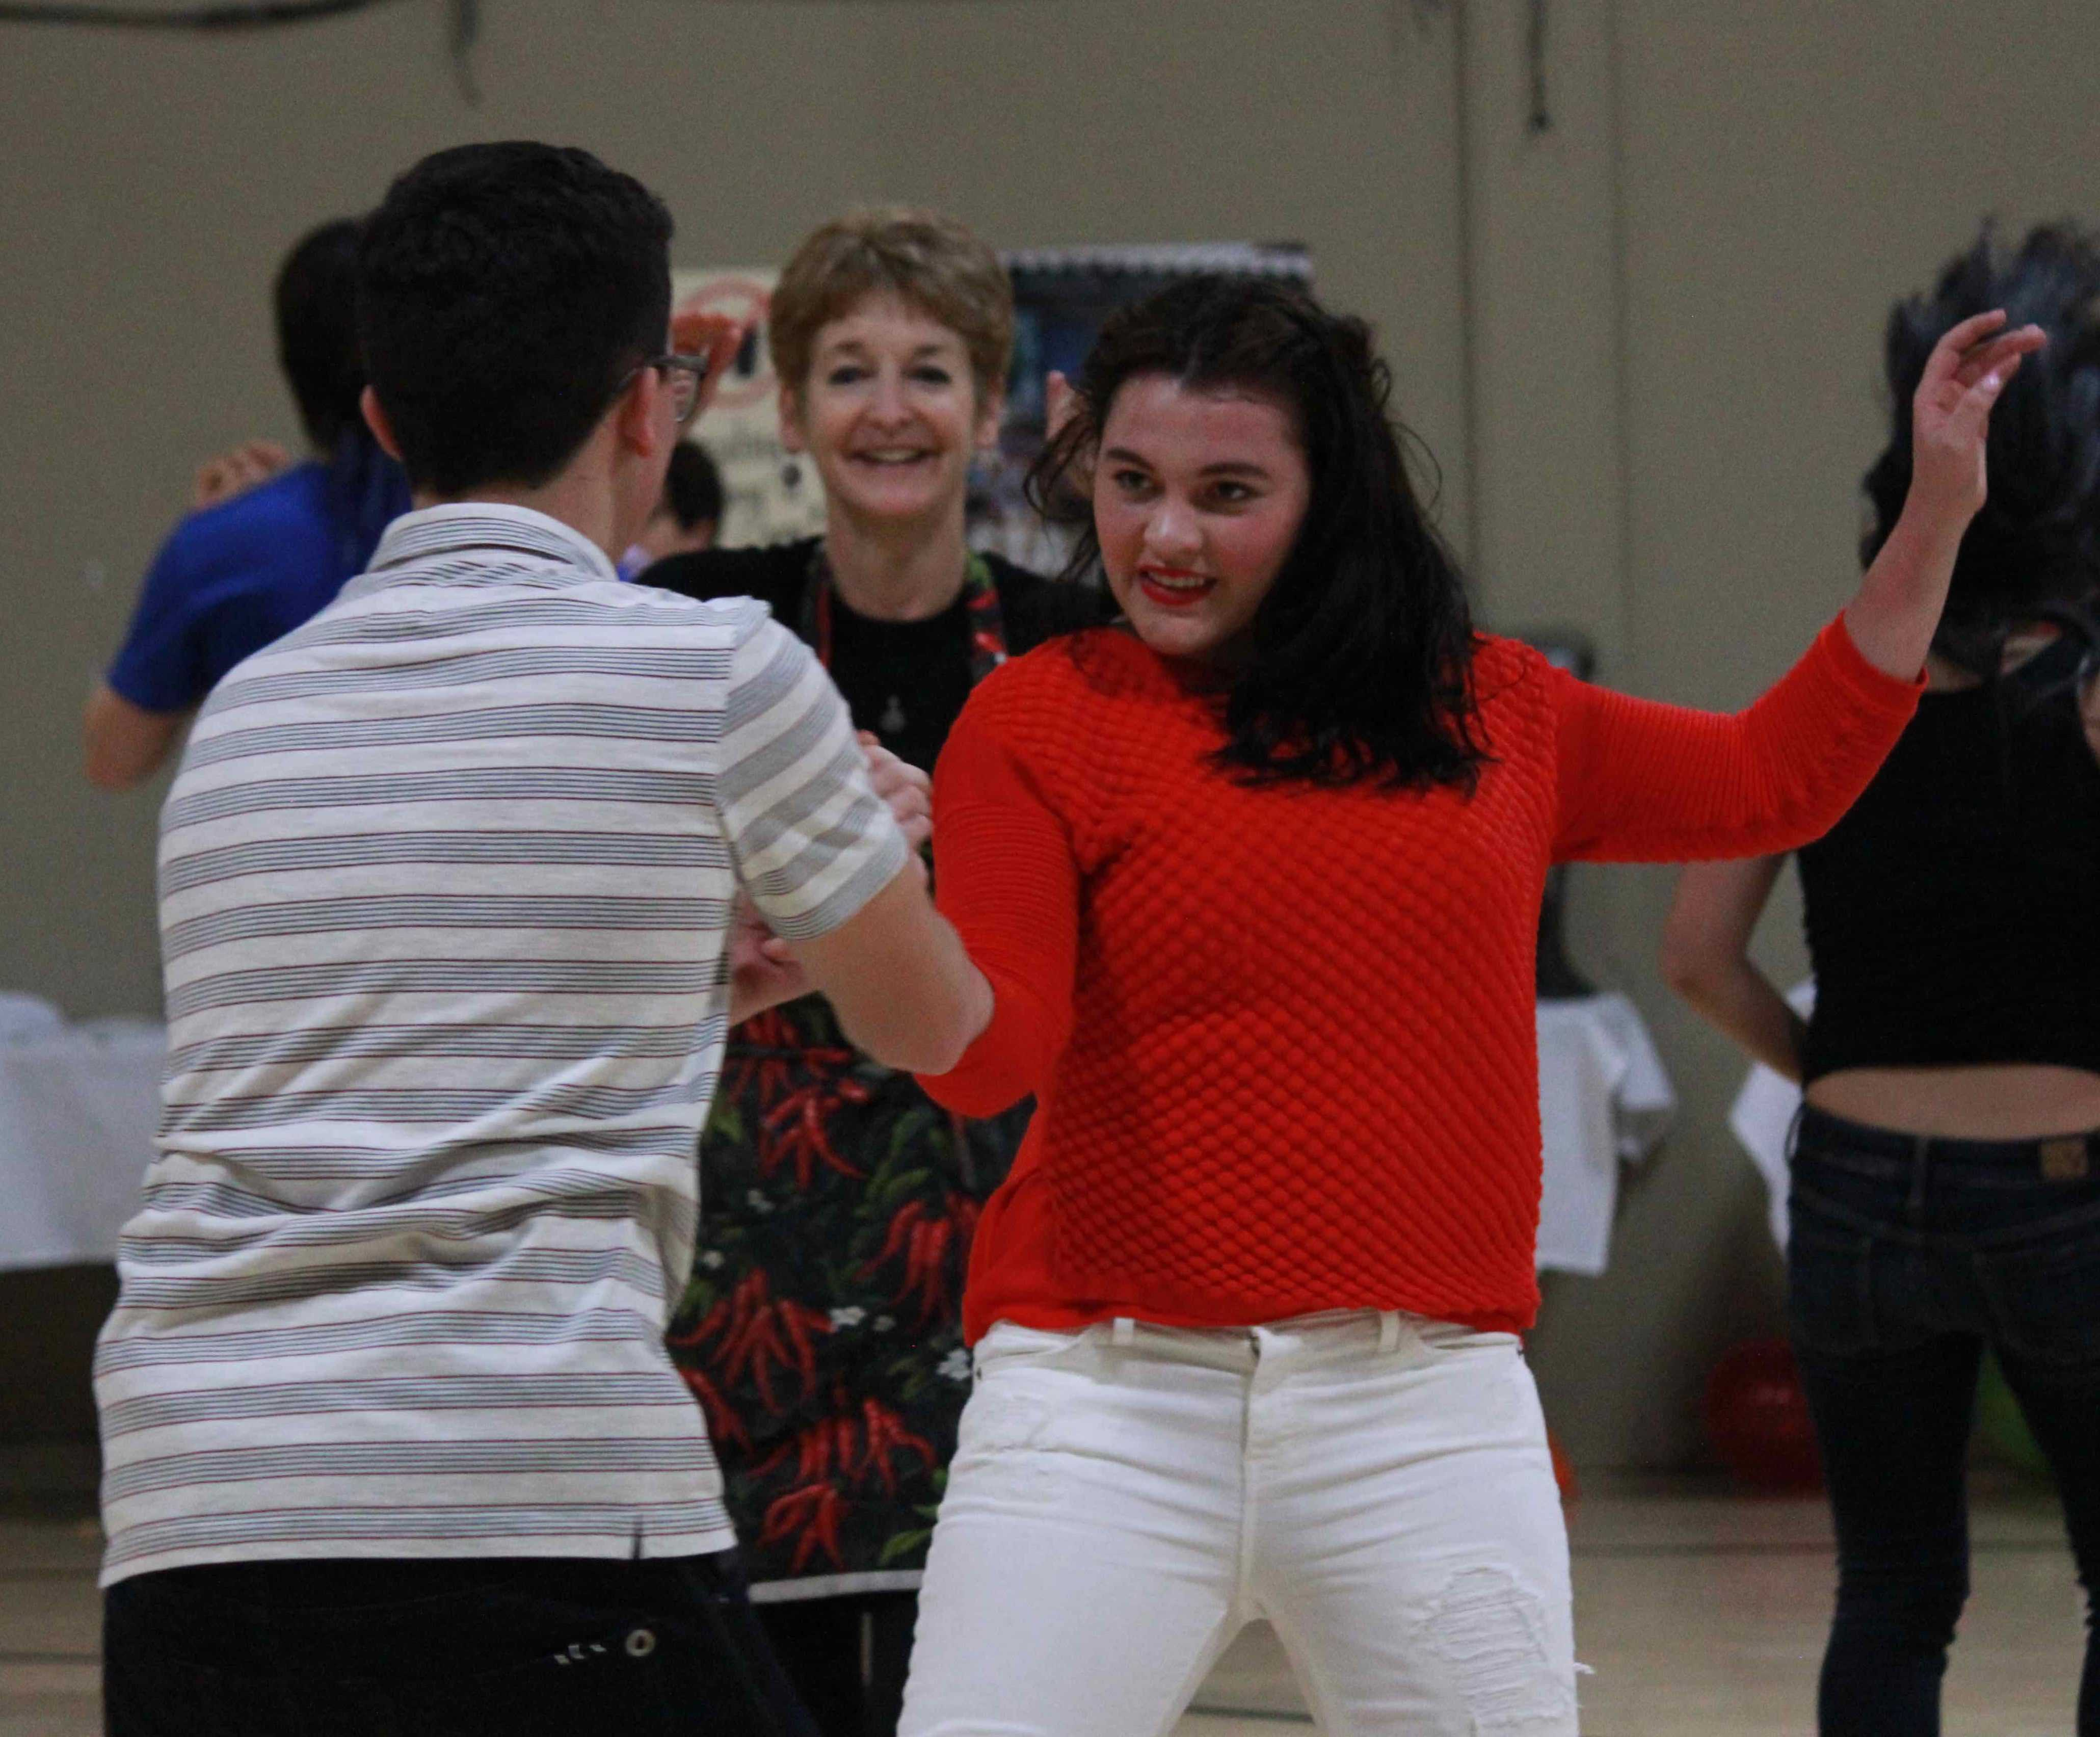 Devin Keller (9) and Haley Keller (11) show off their dance moves during the salsa dancing competition held at La Noche Cultural. Both also performed in a dance routine in the talent show prior to the salsa dancing competition.